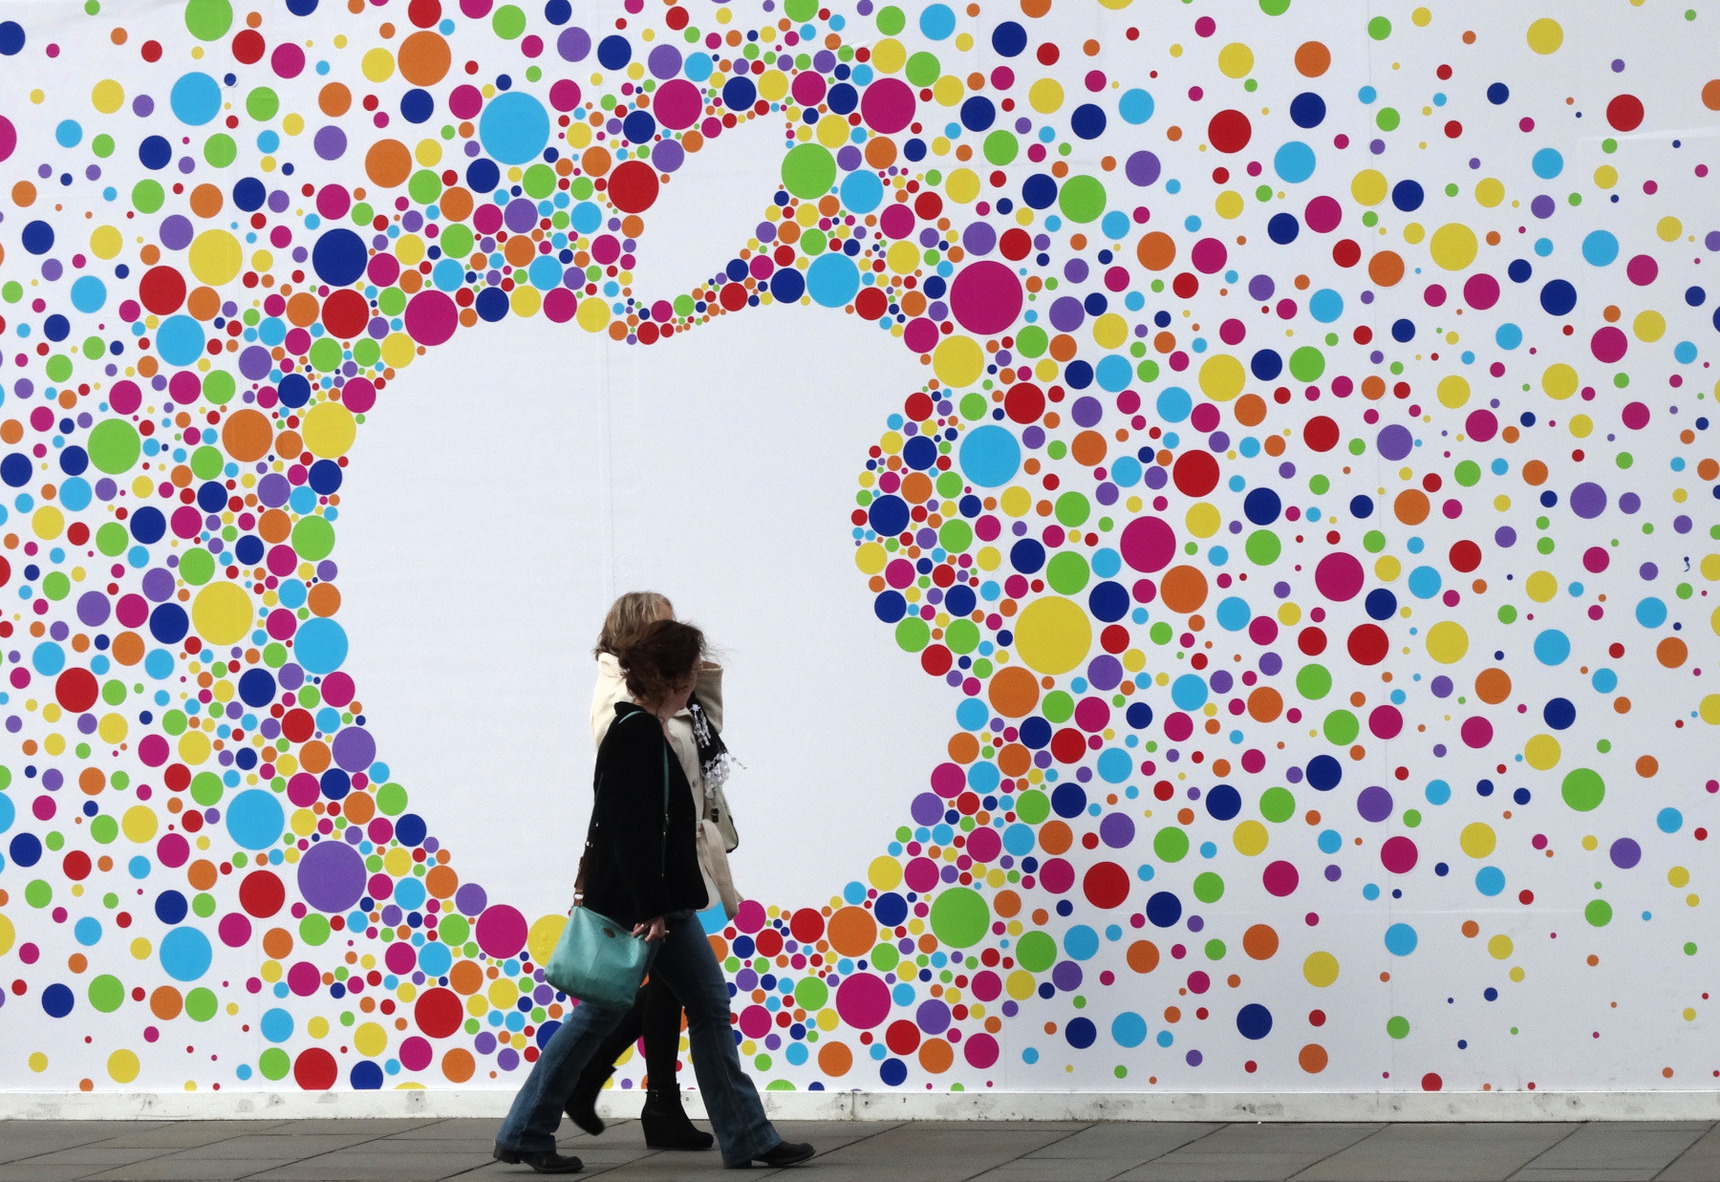 In front of the apple